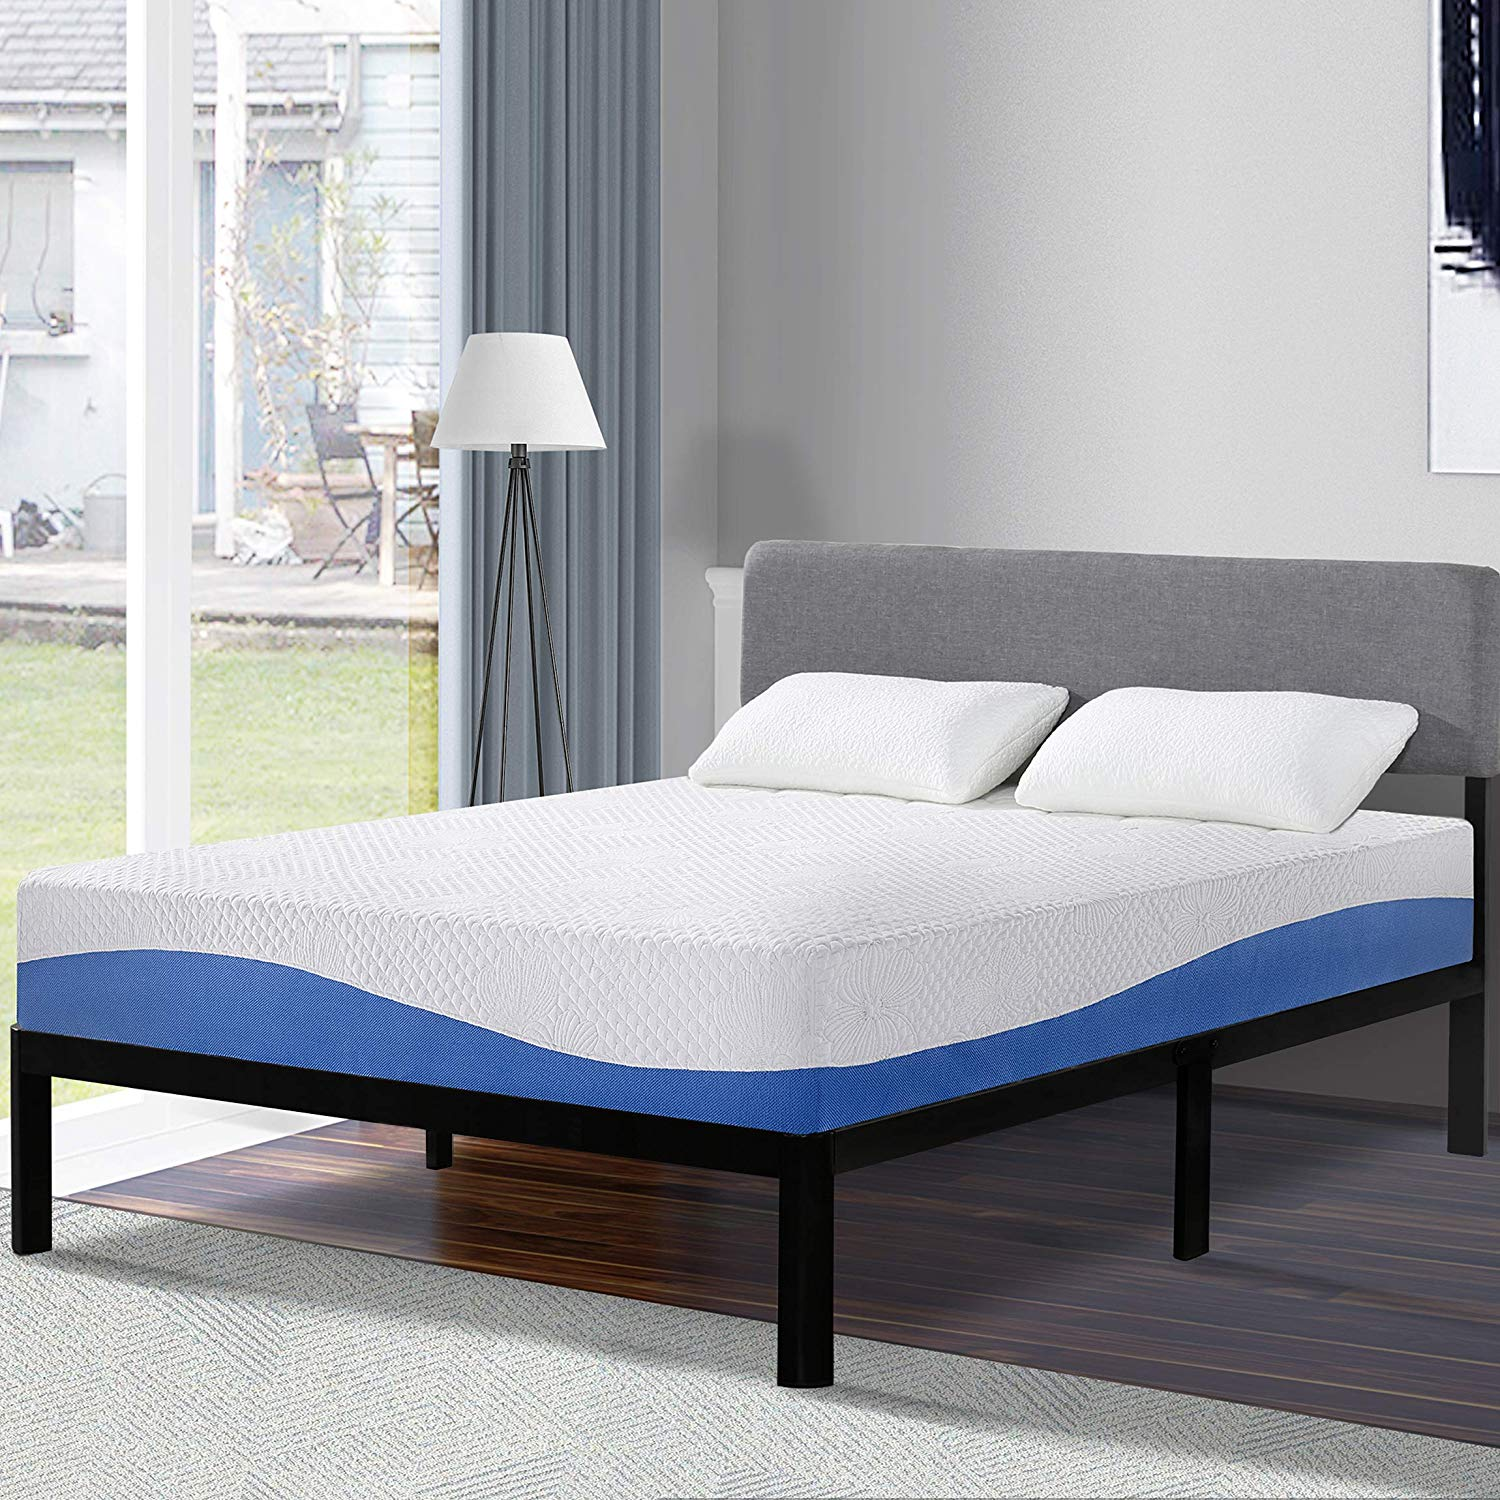 Olee Sleep Mattress Brand